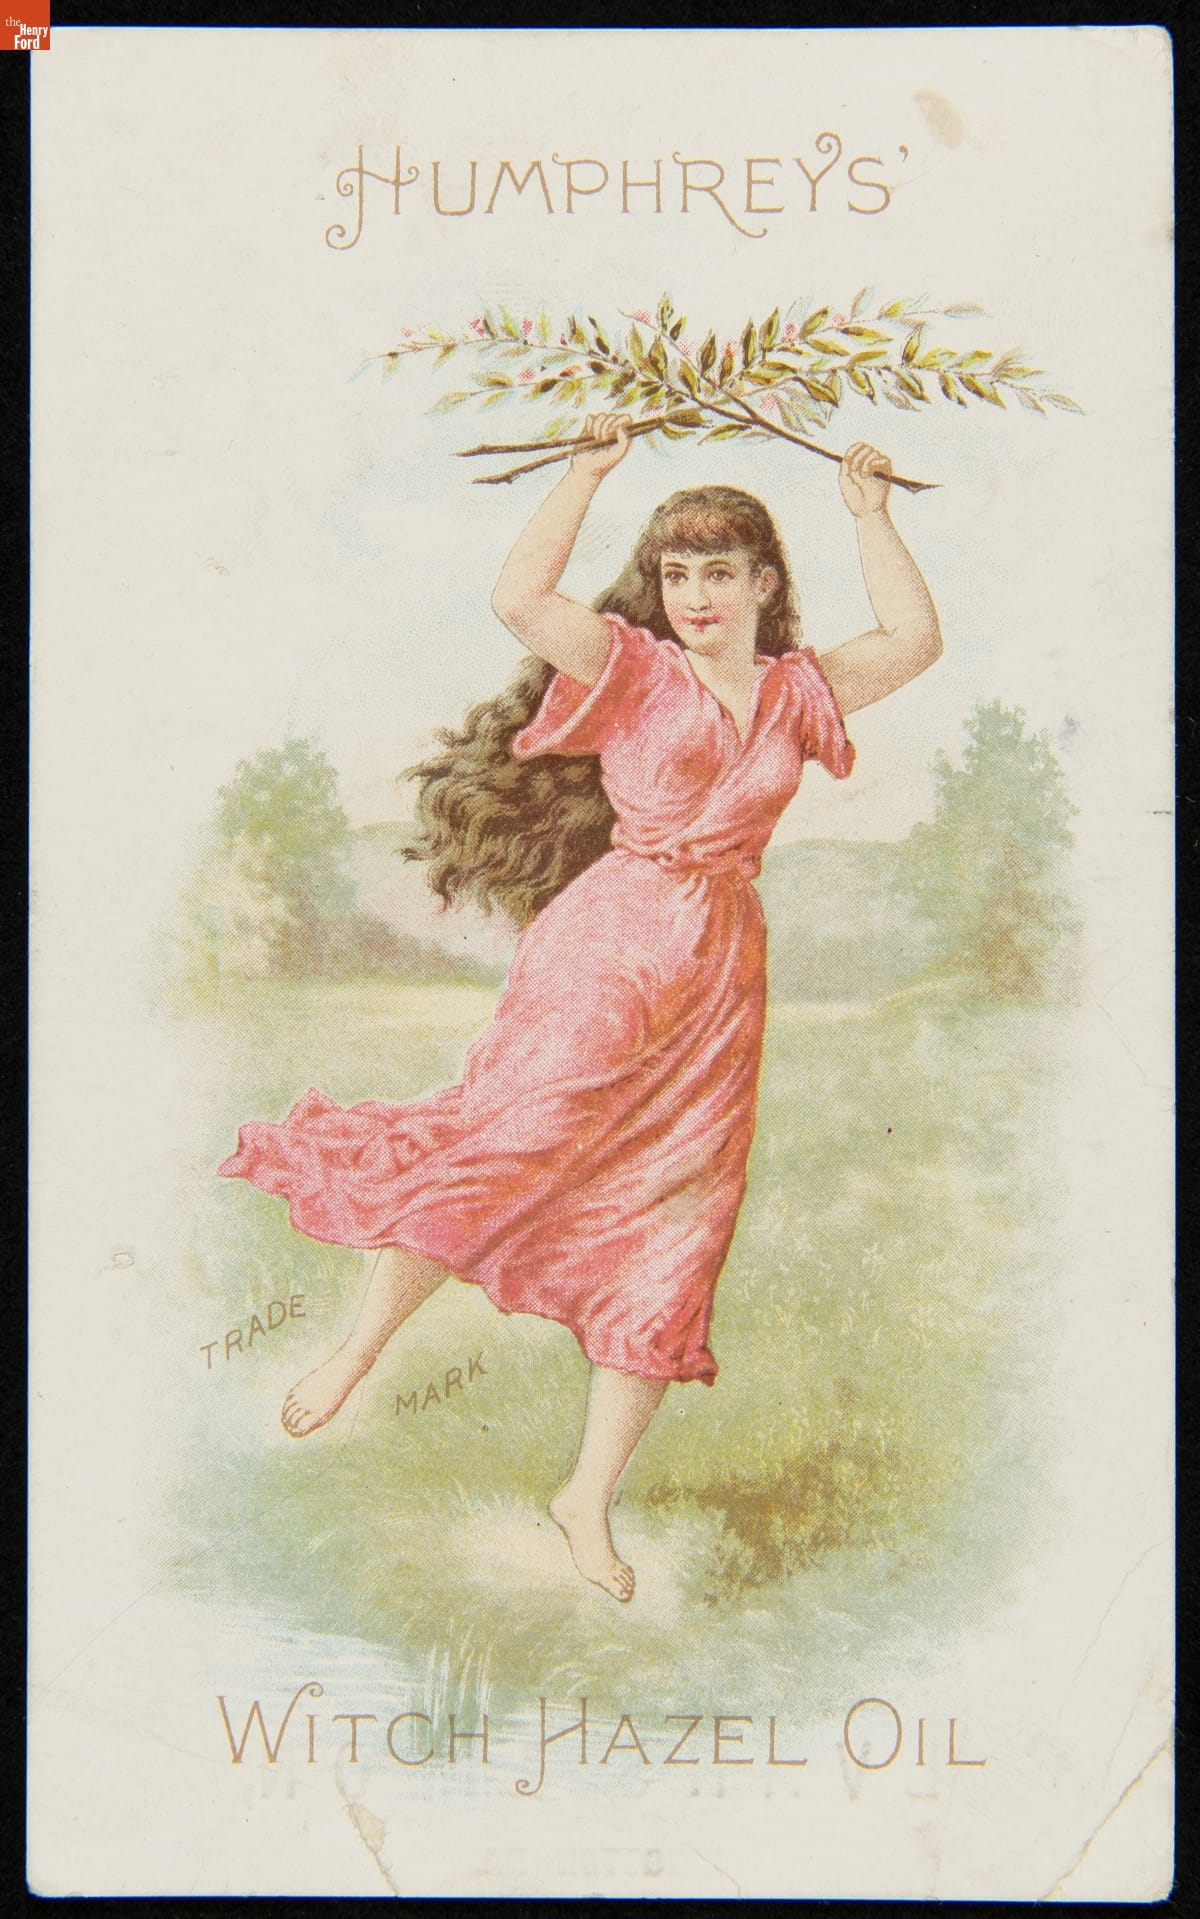 Illustration of woman in red dress in field, one leg held out behind her, holding two leafy branches crossed above her head; also contains text